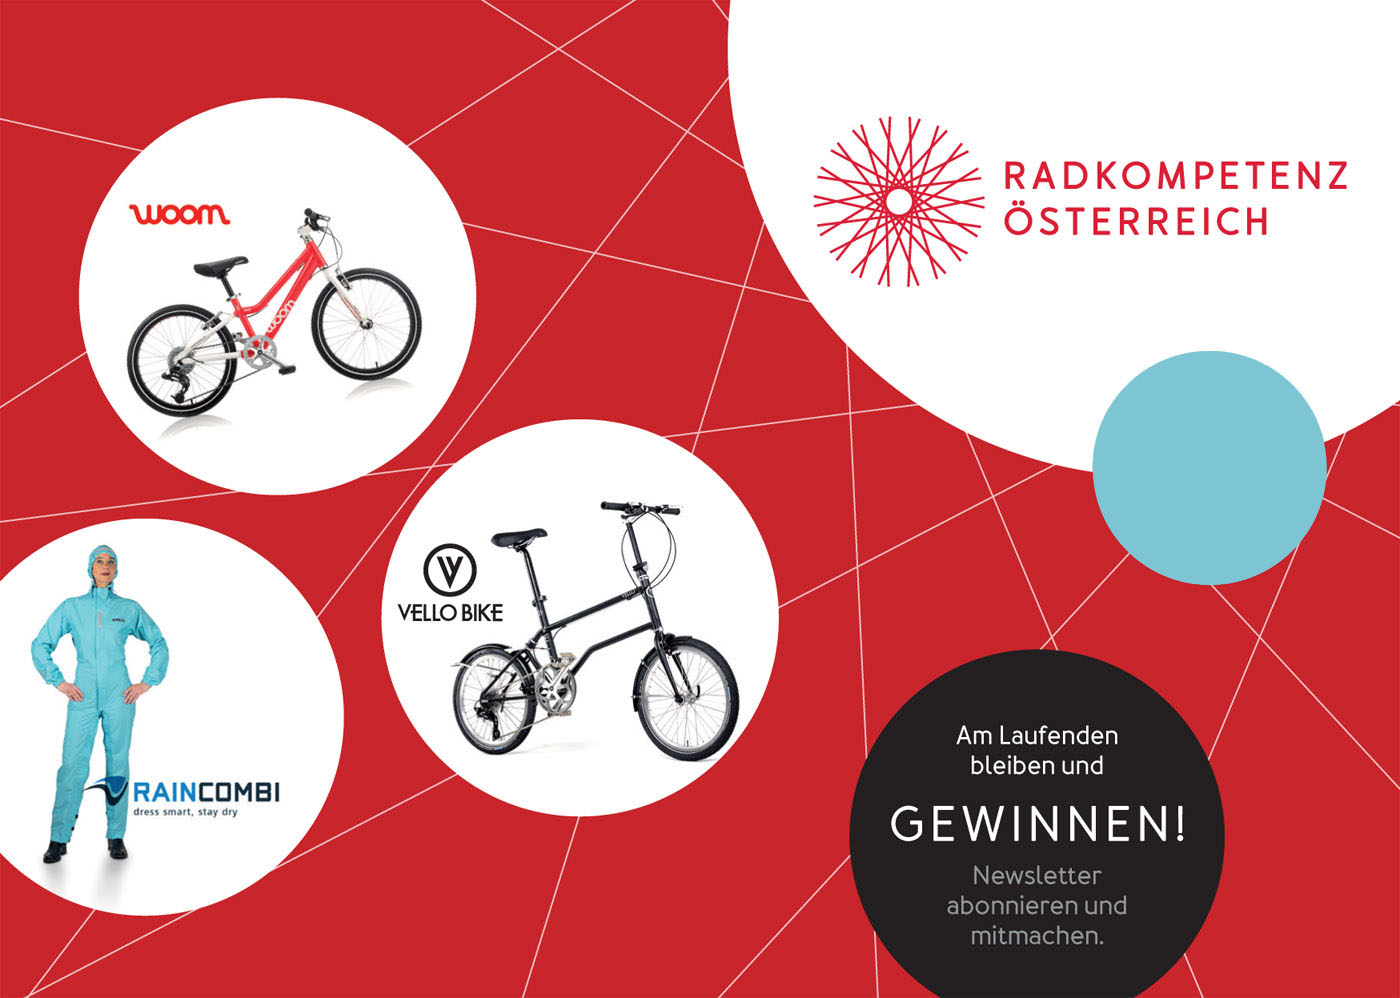 The CycleCompetence prize draw: Subscribe to our newsletter!